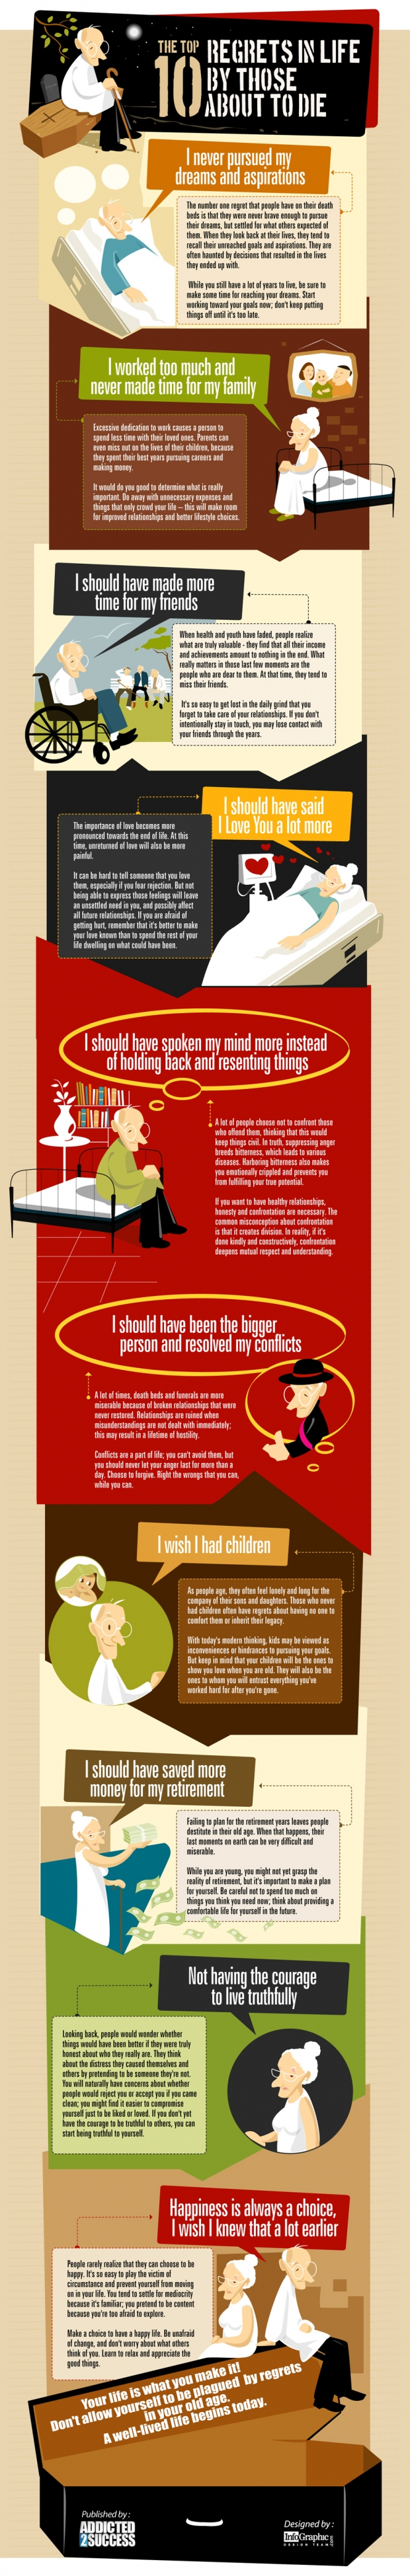 infographic-the-top-10-regrets-in-life-by-those-about-to-die1